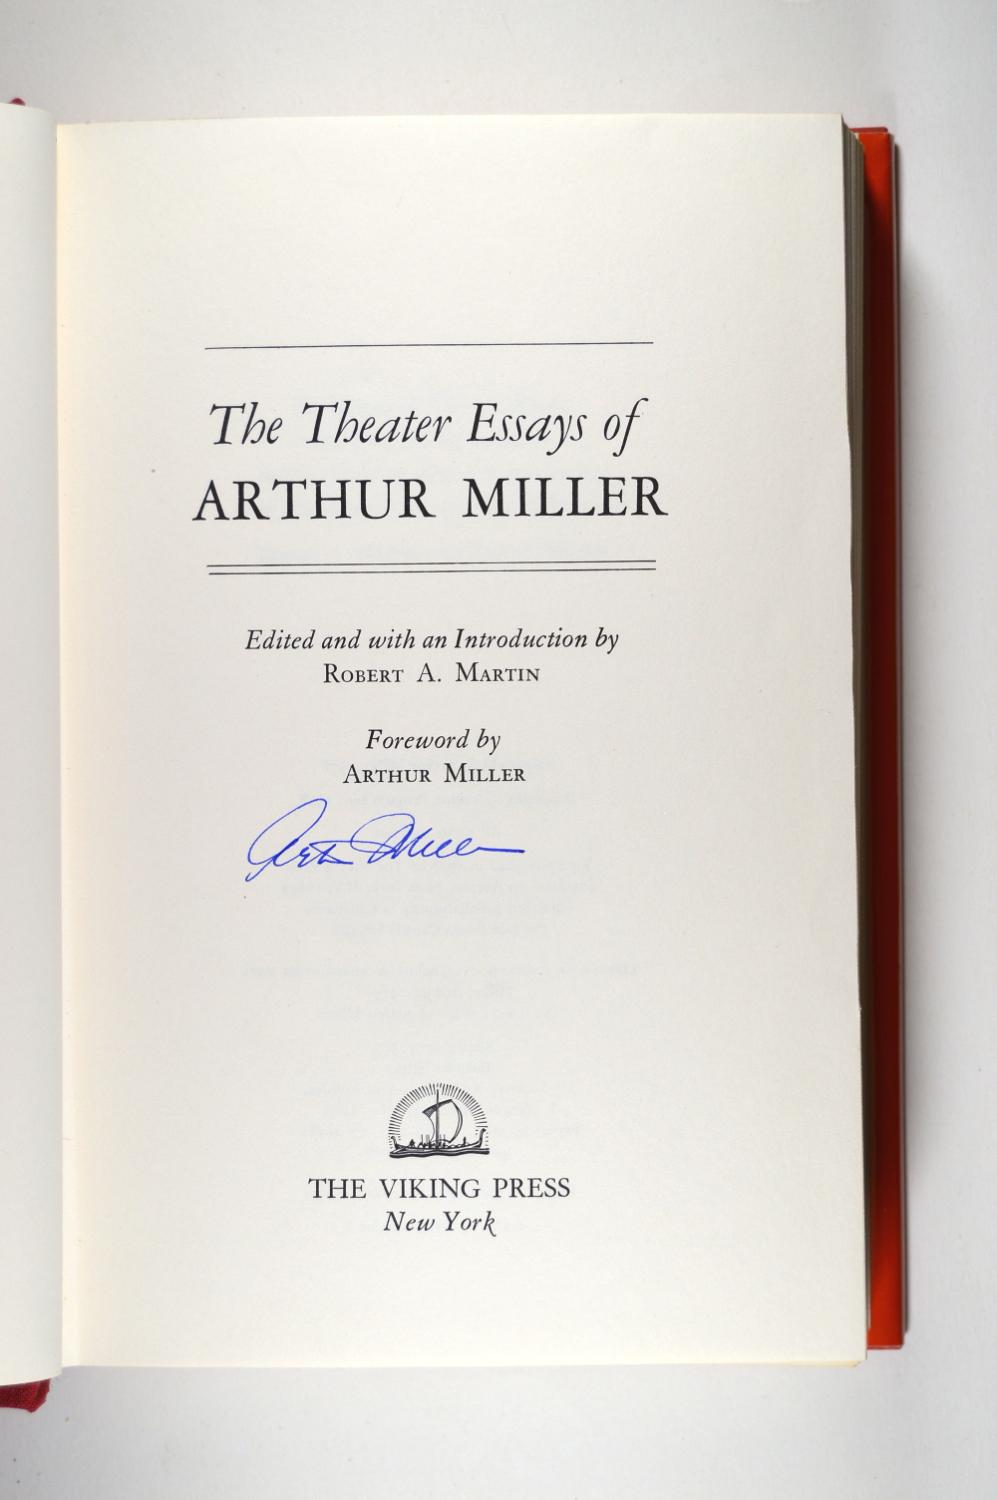 Generals Die In Bed Essay The Theater Essays Of Arthur Miller Miller Arthur To Kill A Mockingbird Symbolism Essay also What Are The Types Of Essay Writing The Theater Essays Of Arthur Miller By Miller Arthur New York The  Cause And Effect Essay Smoking